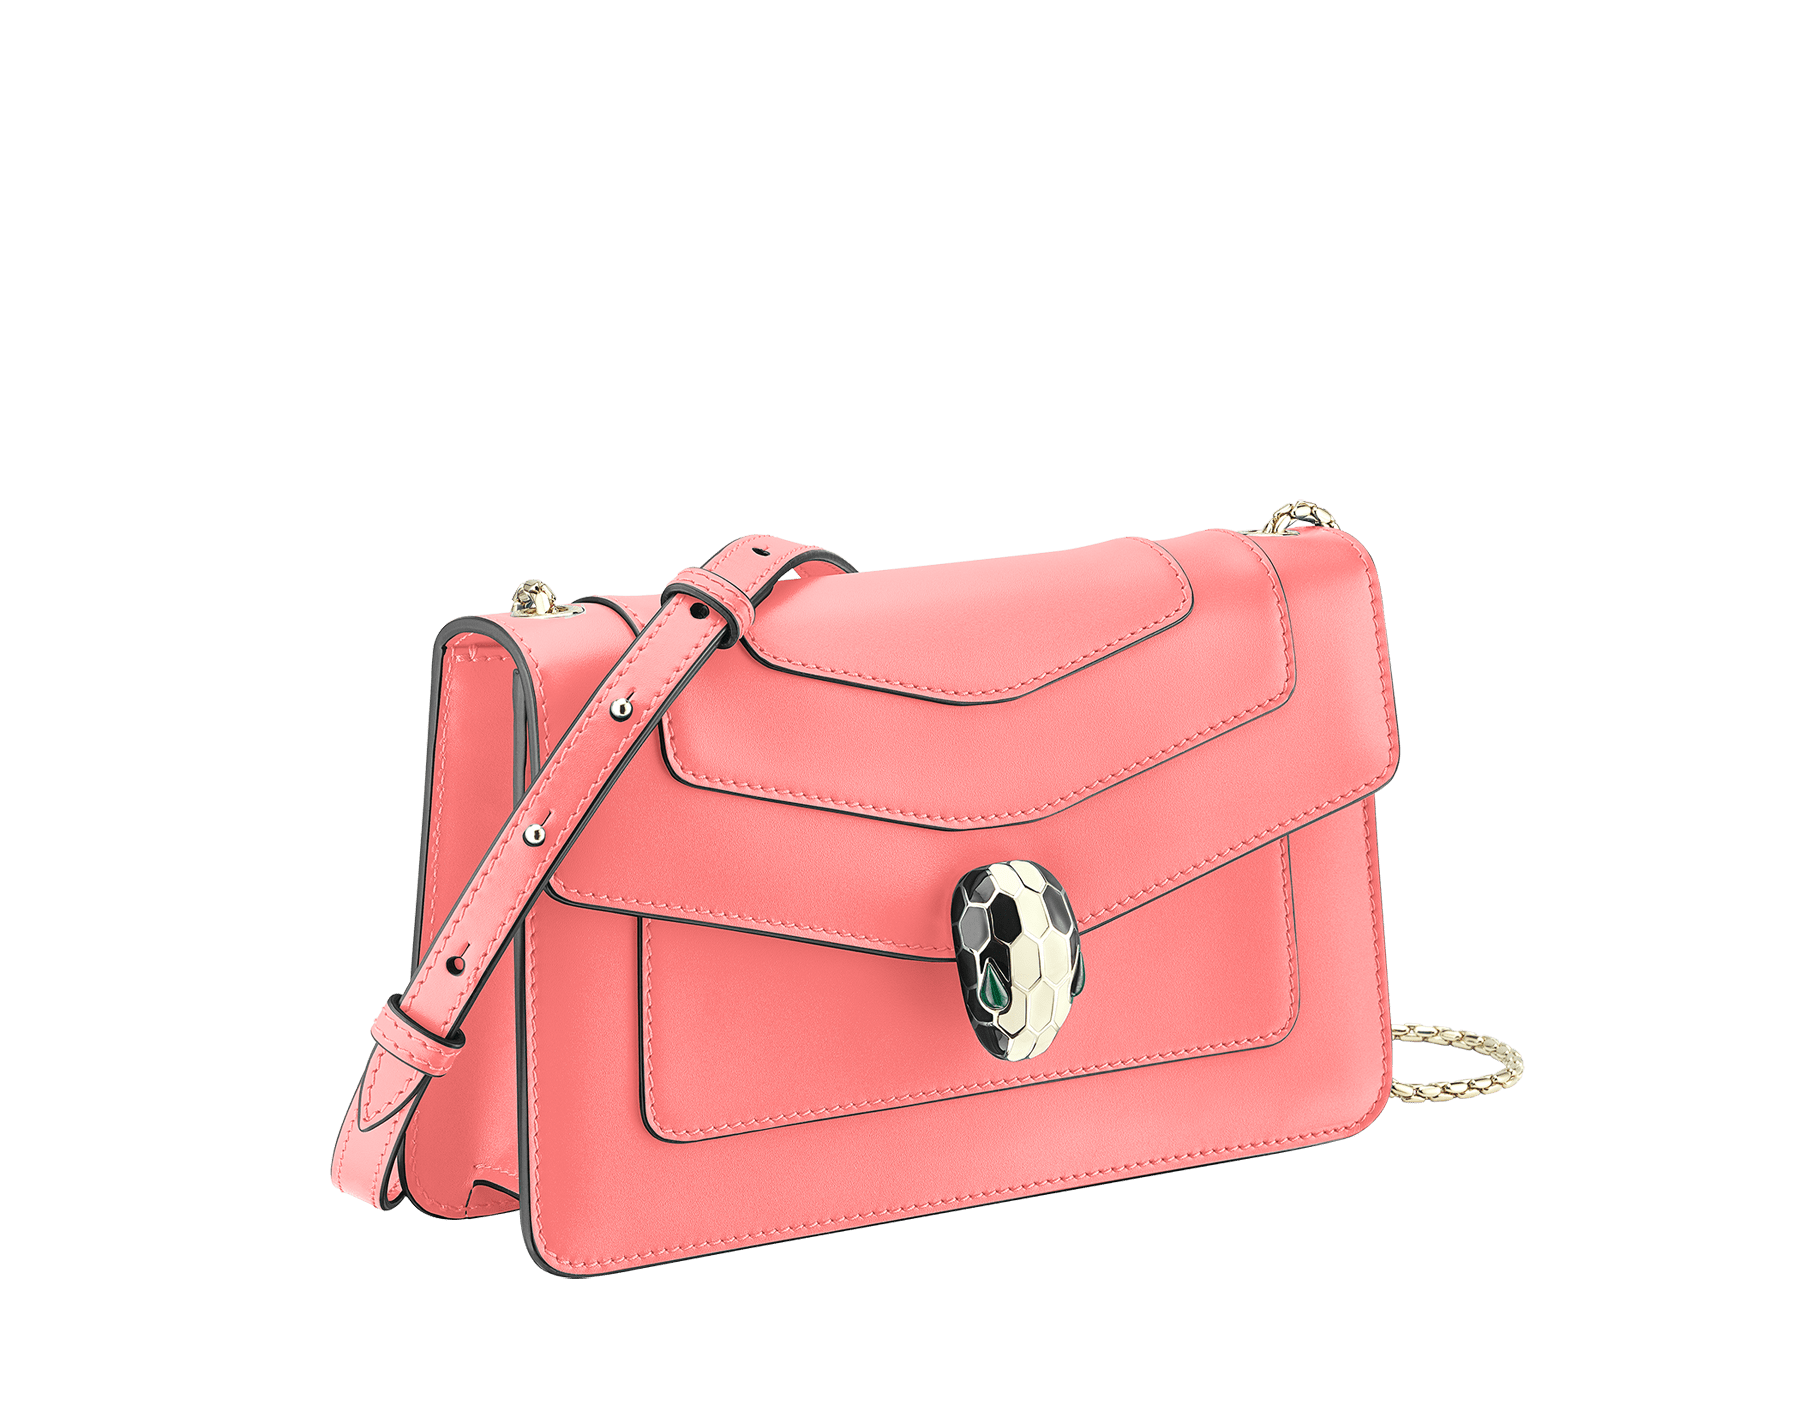 """Serpenti Forever"" crossbody bag in silky coral calf leather. Iconic snake head closure in light gold plated brass enriched with black and white enamel and green malachite eyes. 288708 image 2"